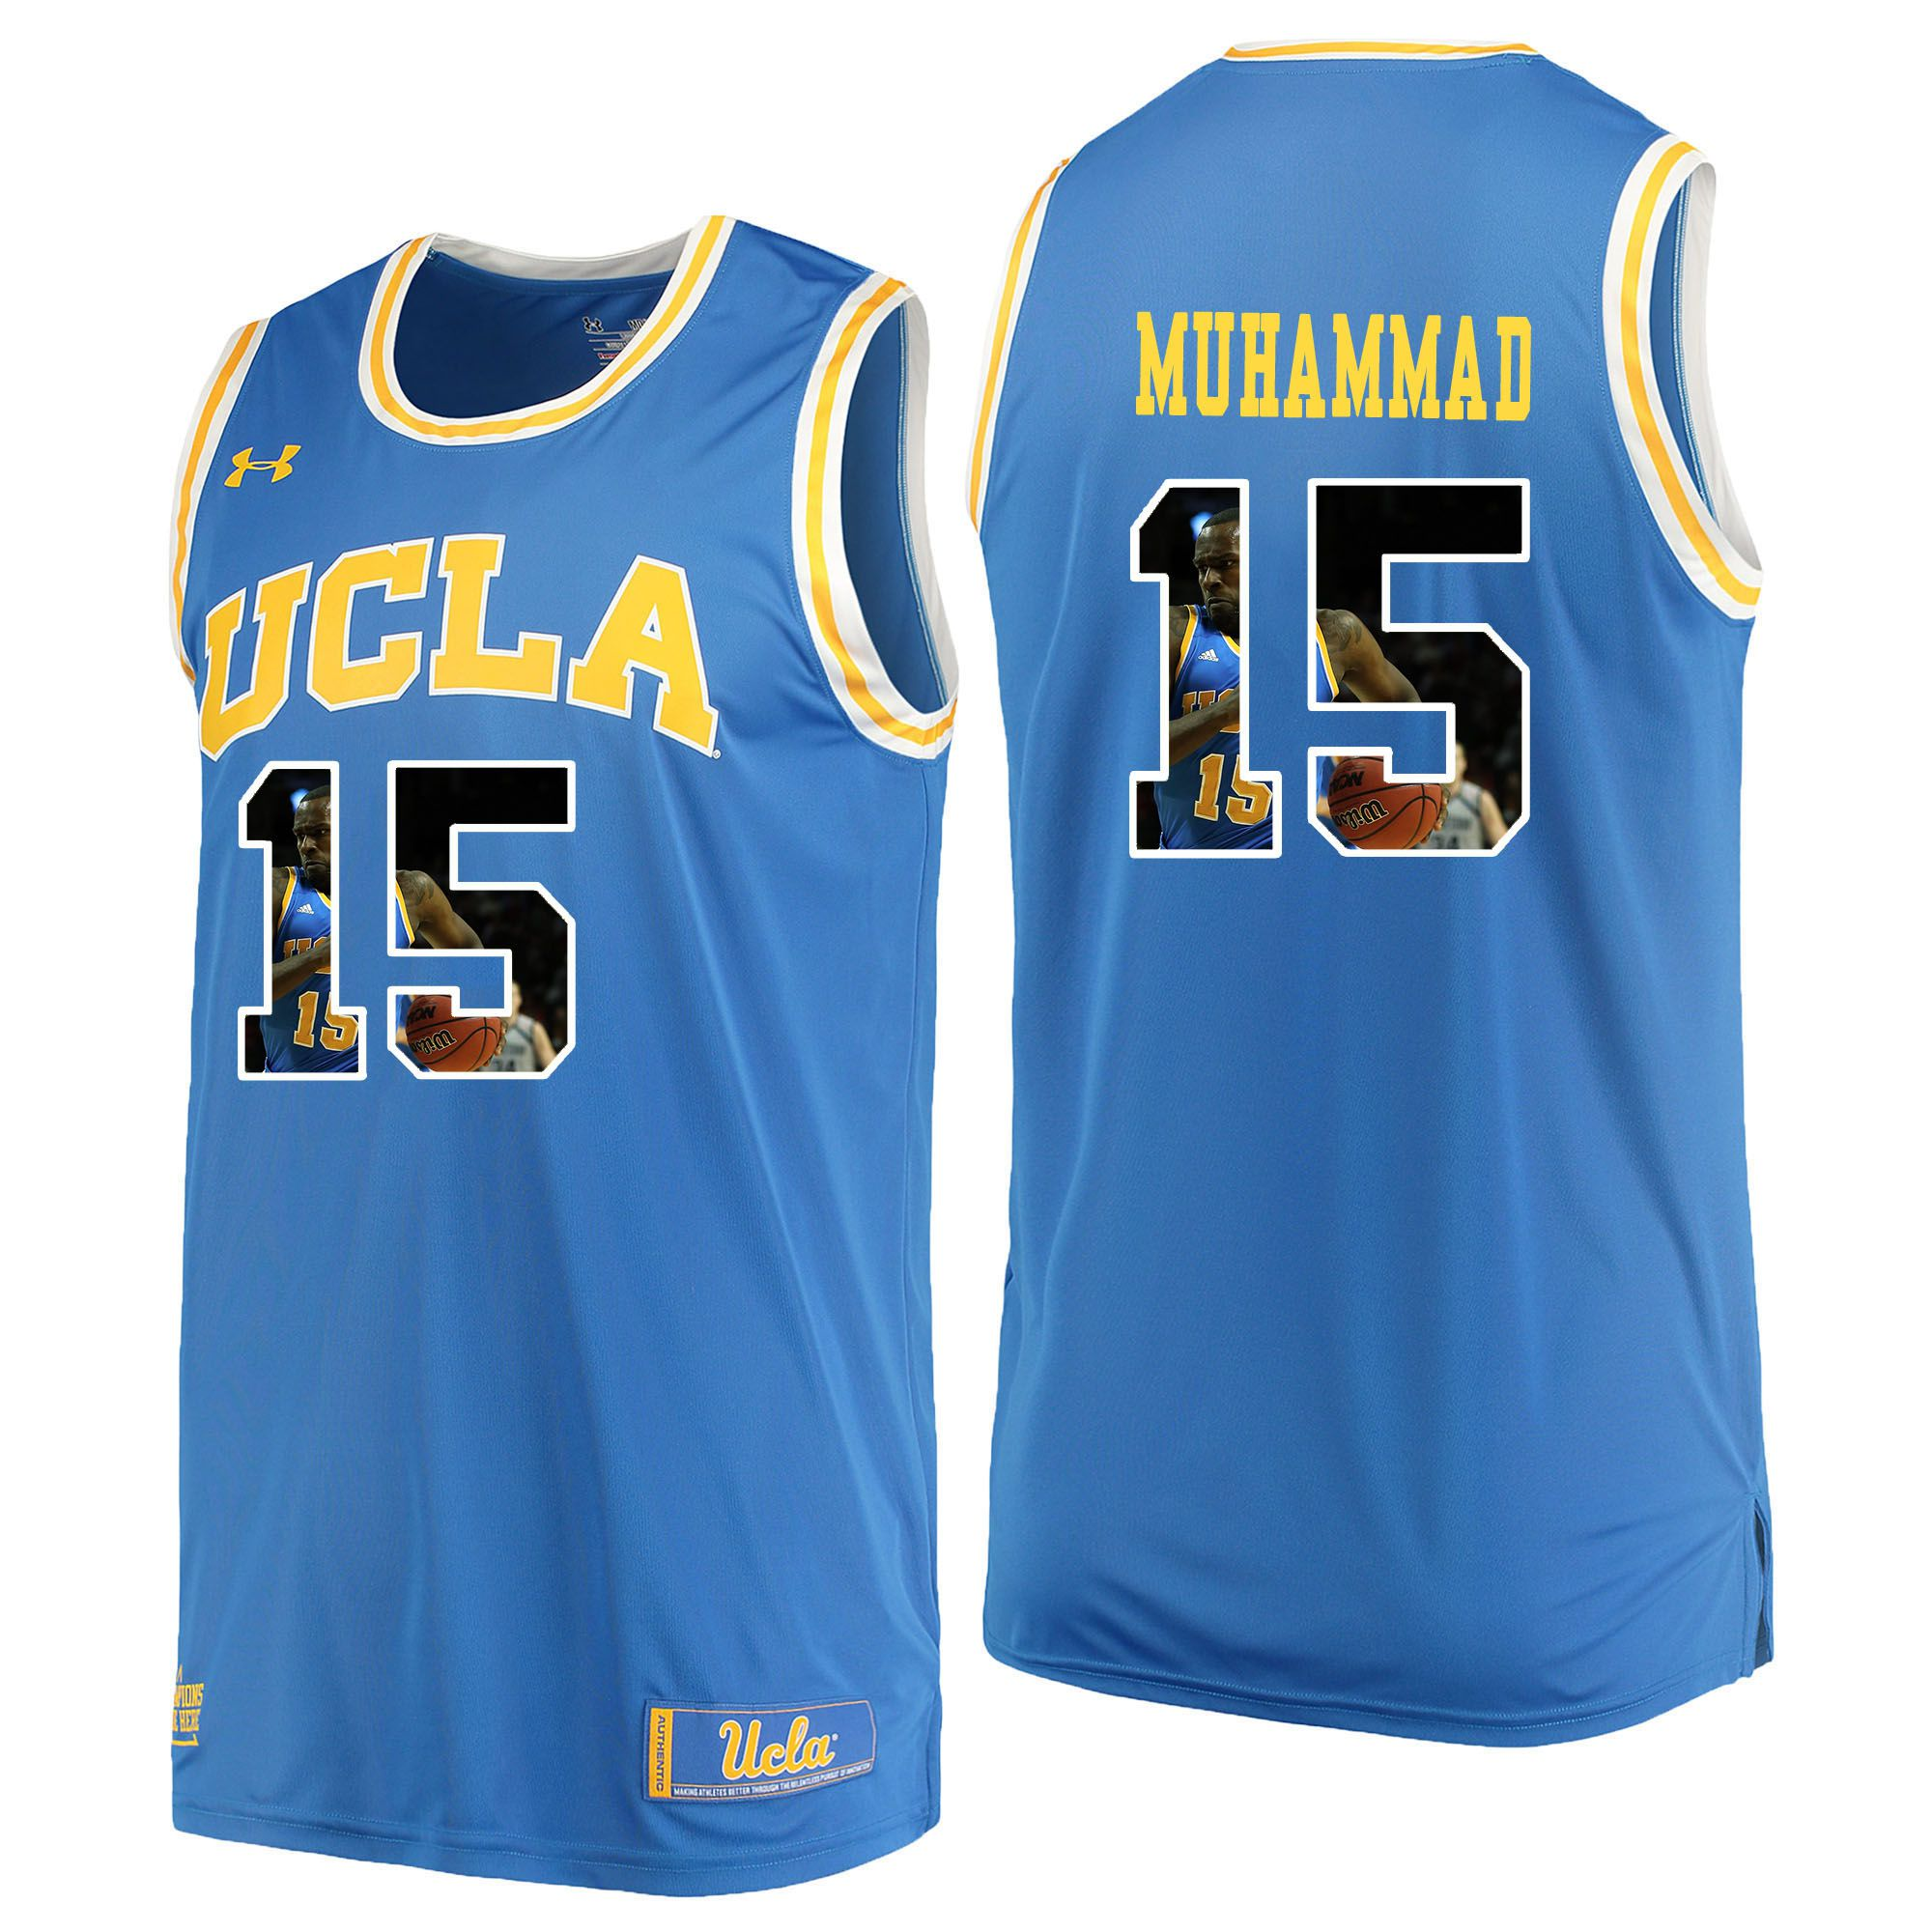 Men UCLA UA 15 Muhammad Light Blue Fashion Edition Customized NCAA Jerseys